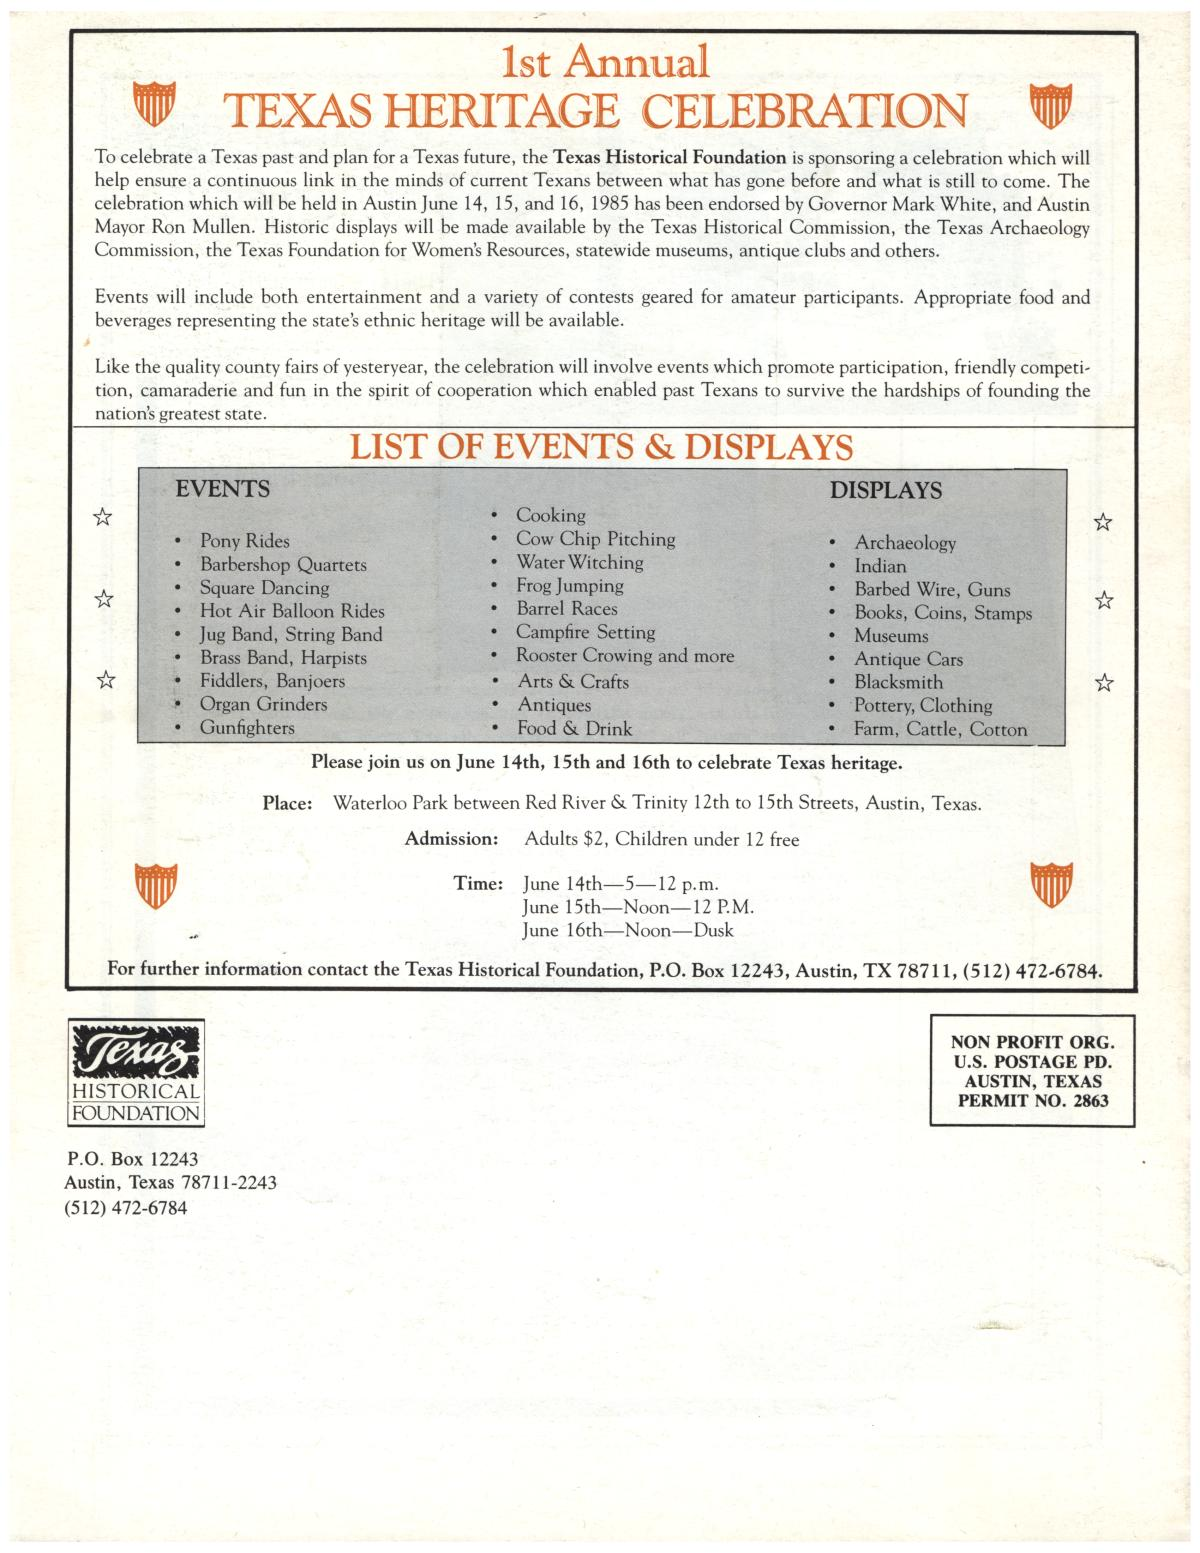 Texas Heritage, Volume 2, Number 2, Spring 1985                                                                                                      Back Cover